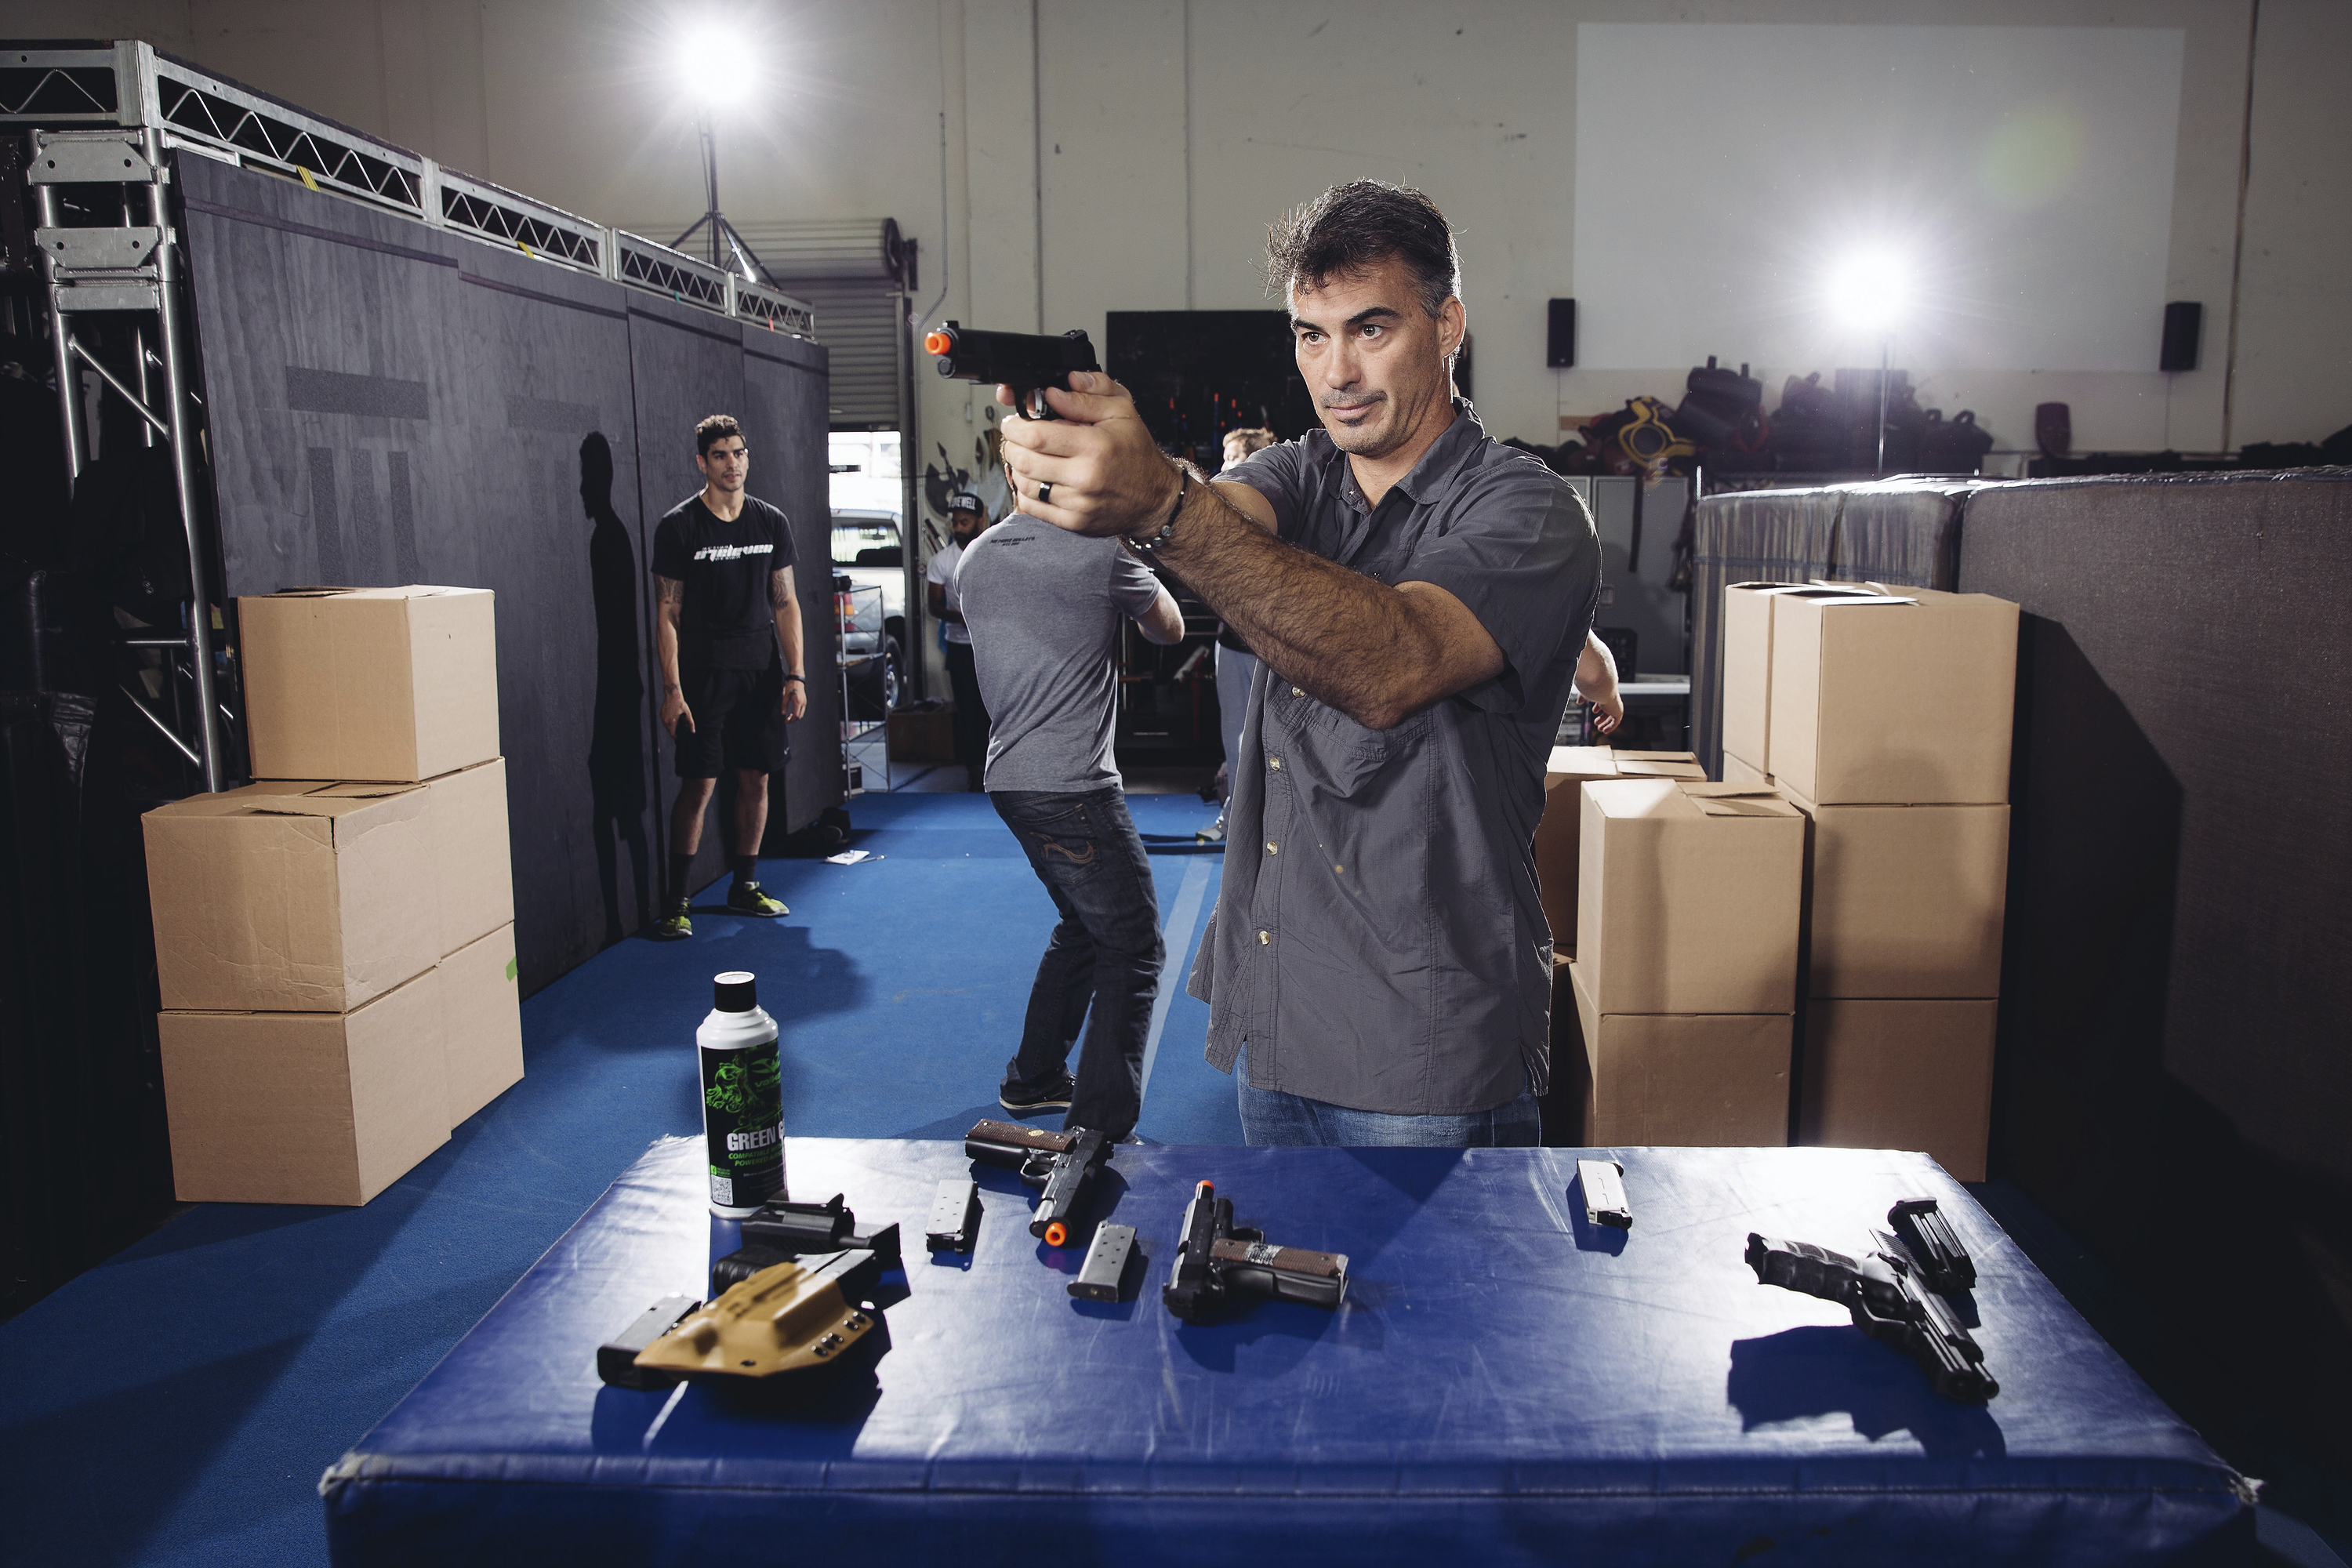 """Chad Stahelski, co-director of the film, """"John Wick,"""" demonstrates proper gun handling during a training session at 87Eleven Action Design in Inglewood, Calif.  in 2014"""